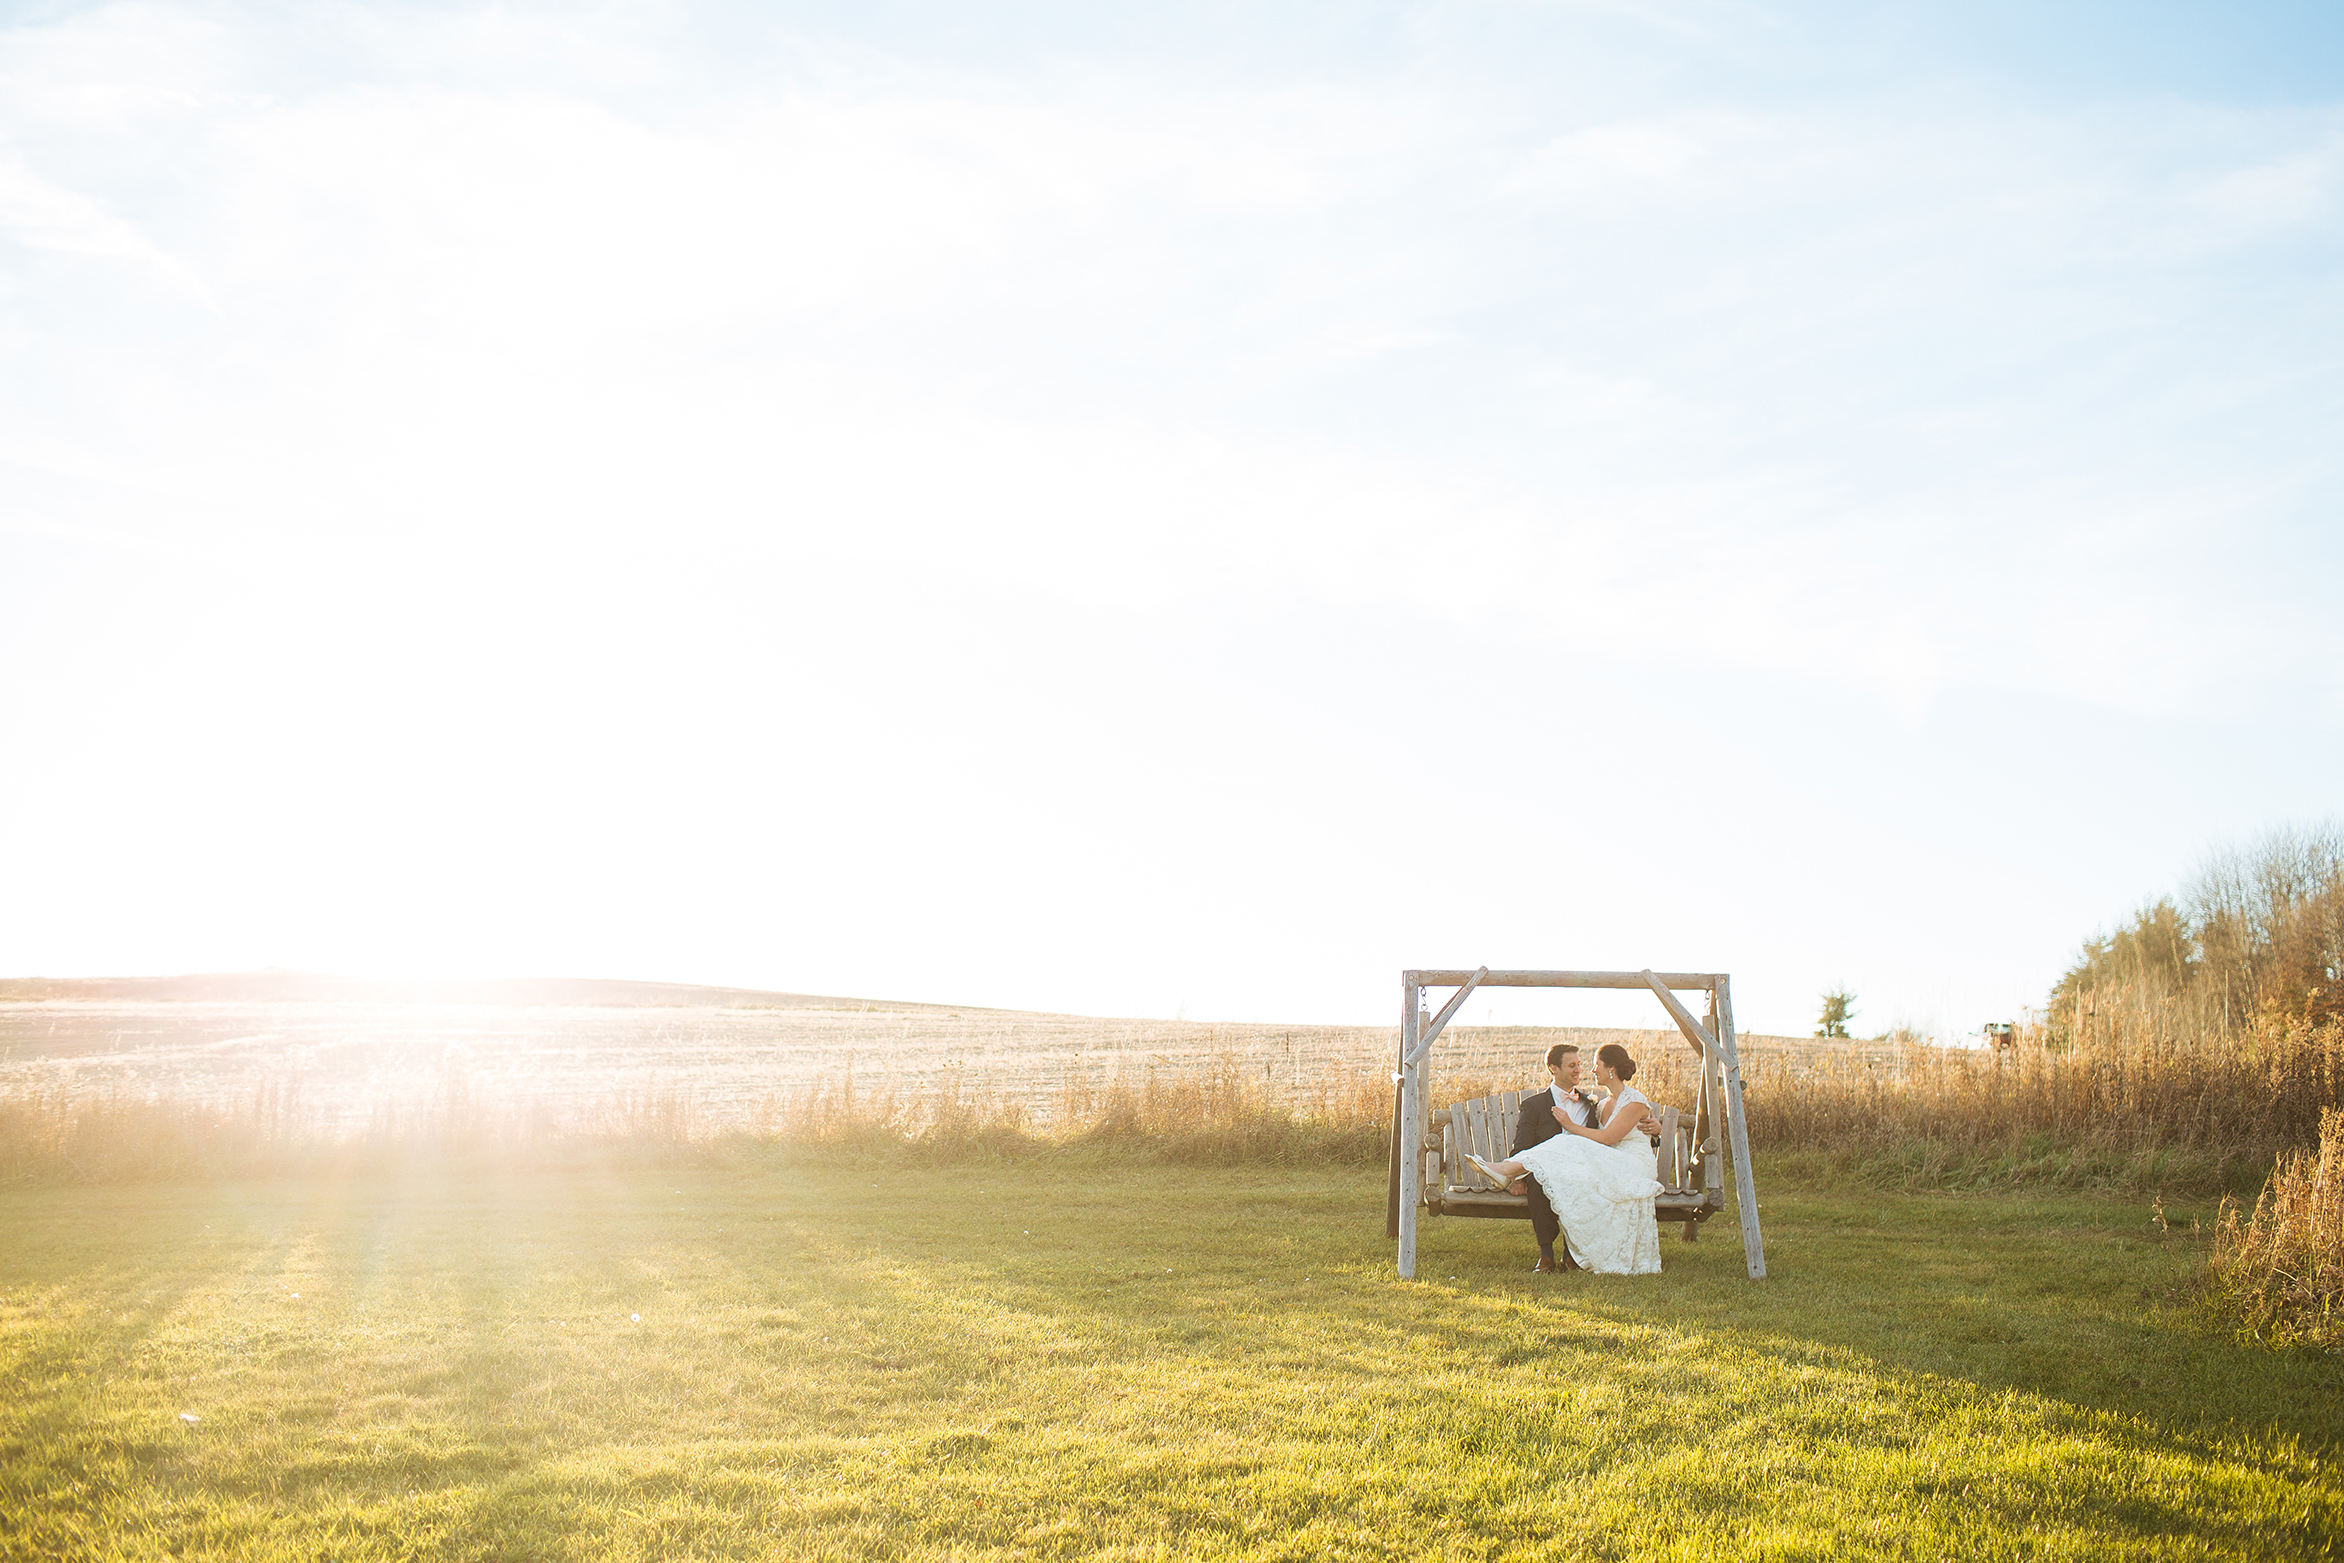 Alyssa Lee Minneapolis Wedding Photographer | Sixpence Standard wedding blog | bride and groom kissing in a field of grassy field on a swing